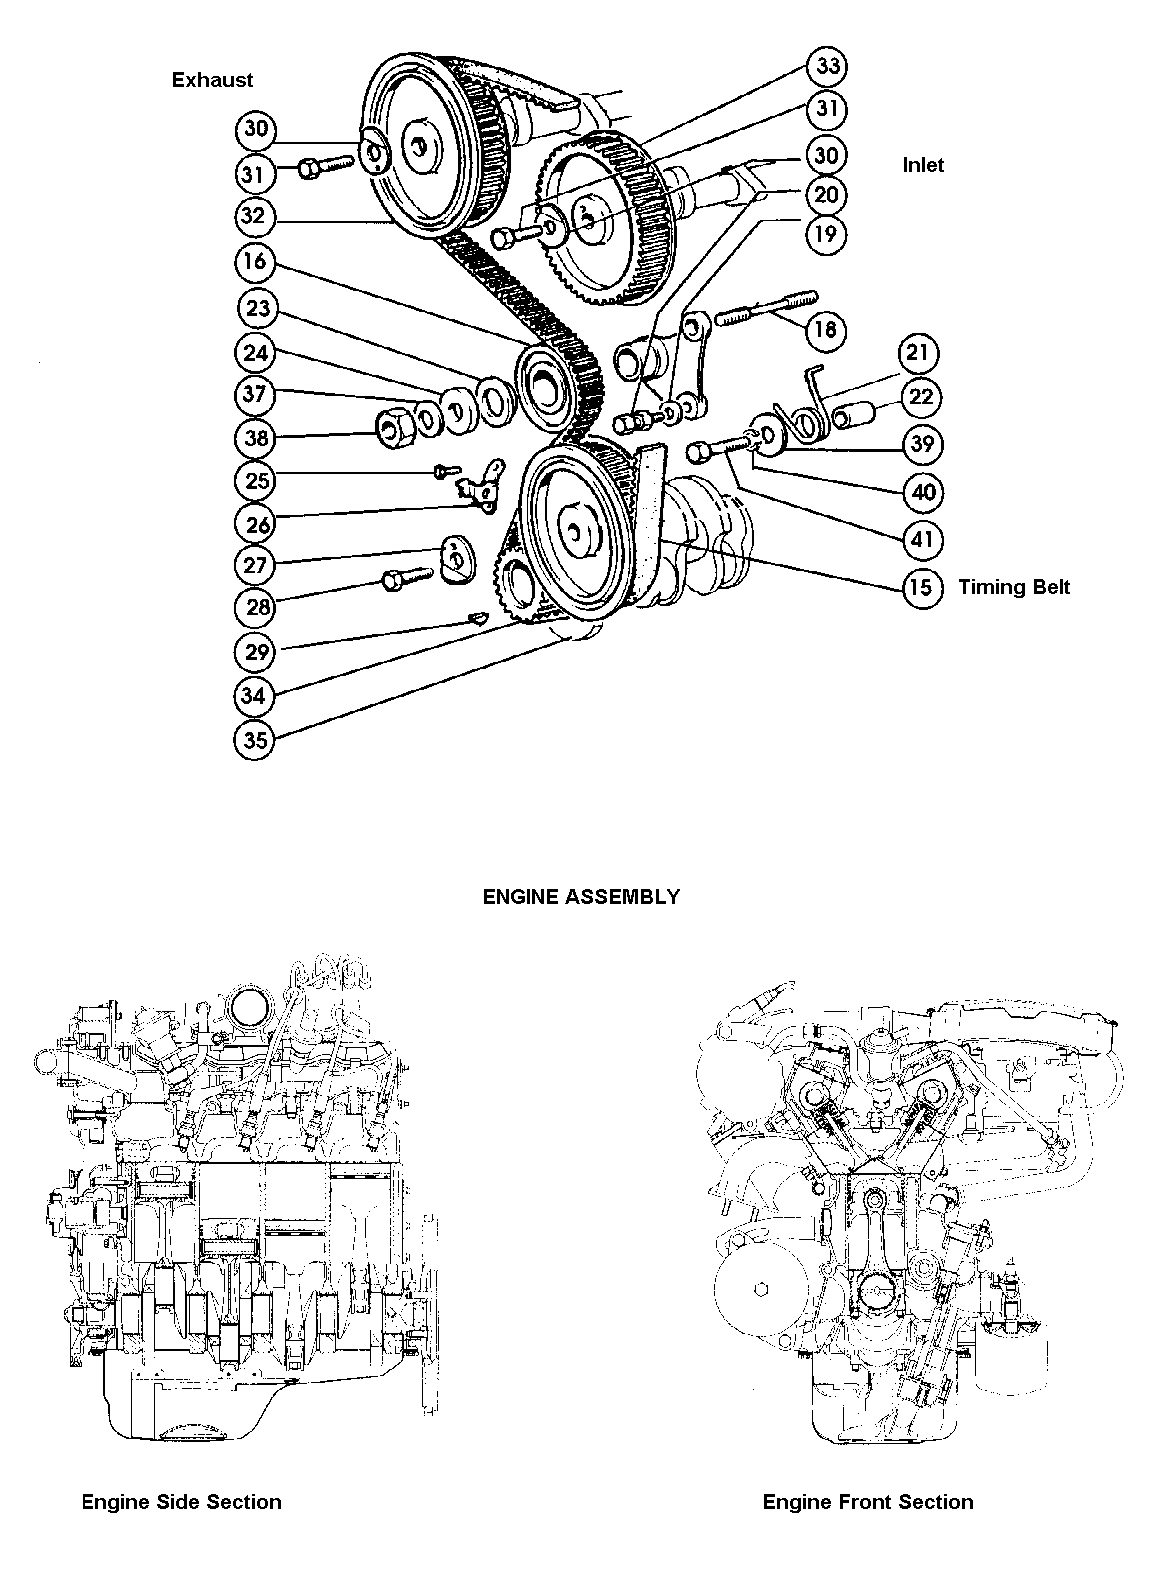 Timing Gear & Engine Assembly